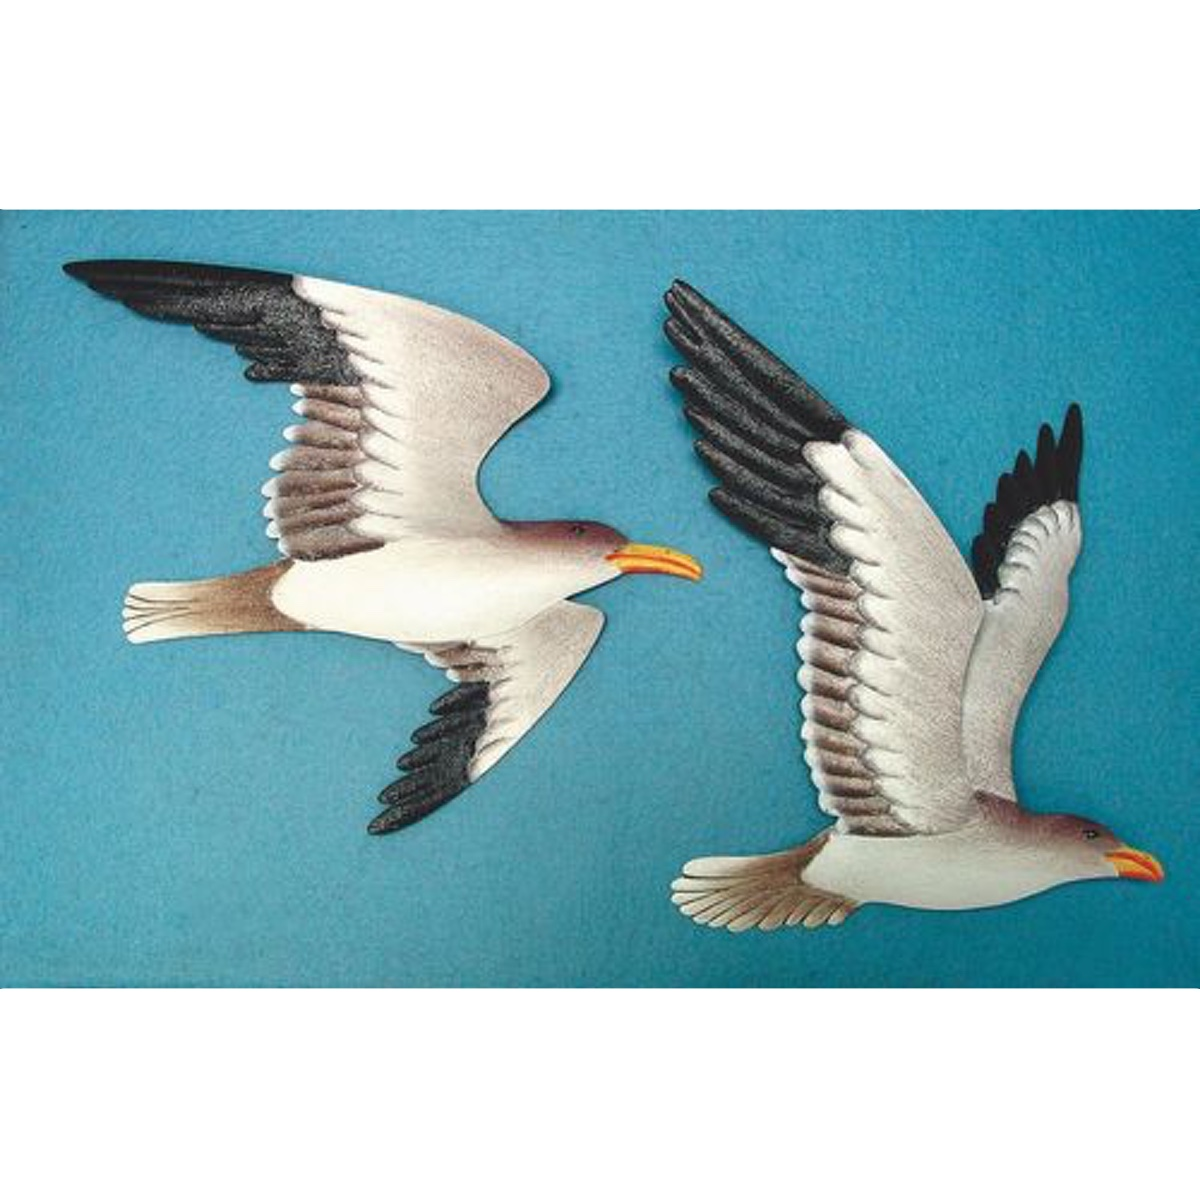 2 Metal Seagull Wall Plaques Soaring Birds Nautical Home Decor Flying Shore Birds